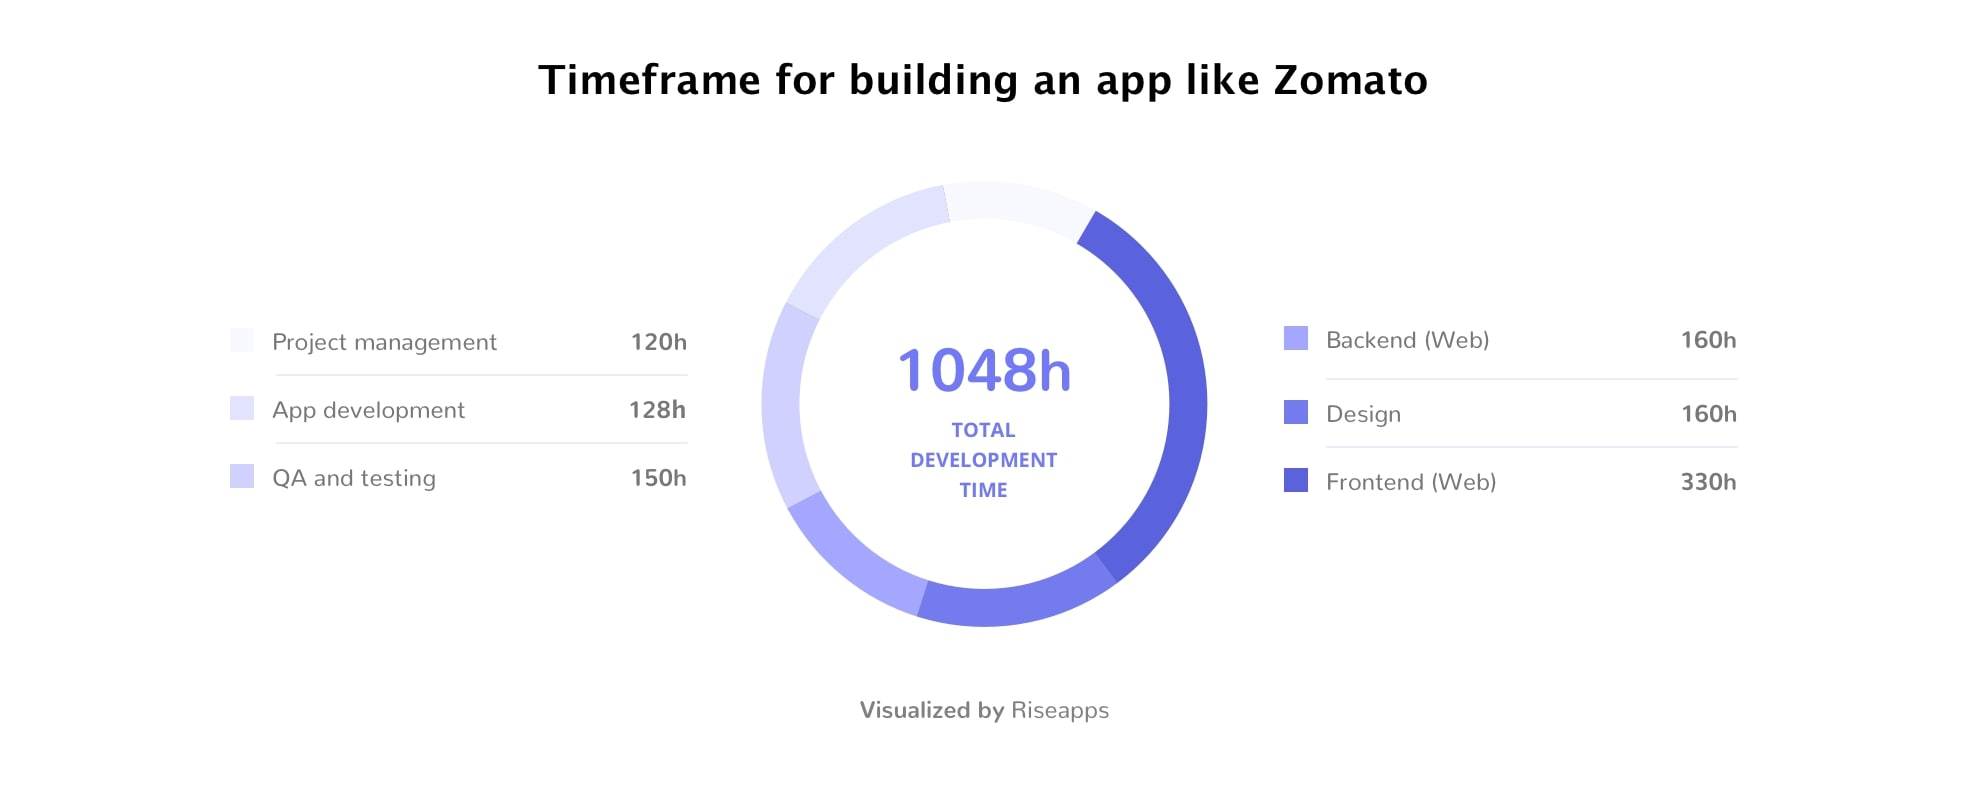 Timeframe for building an app like Zomato